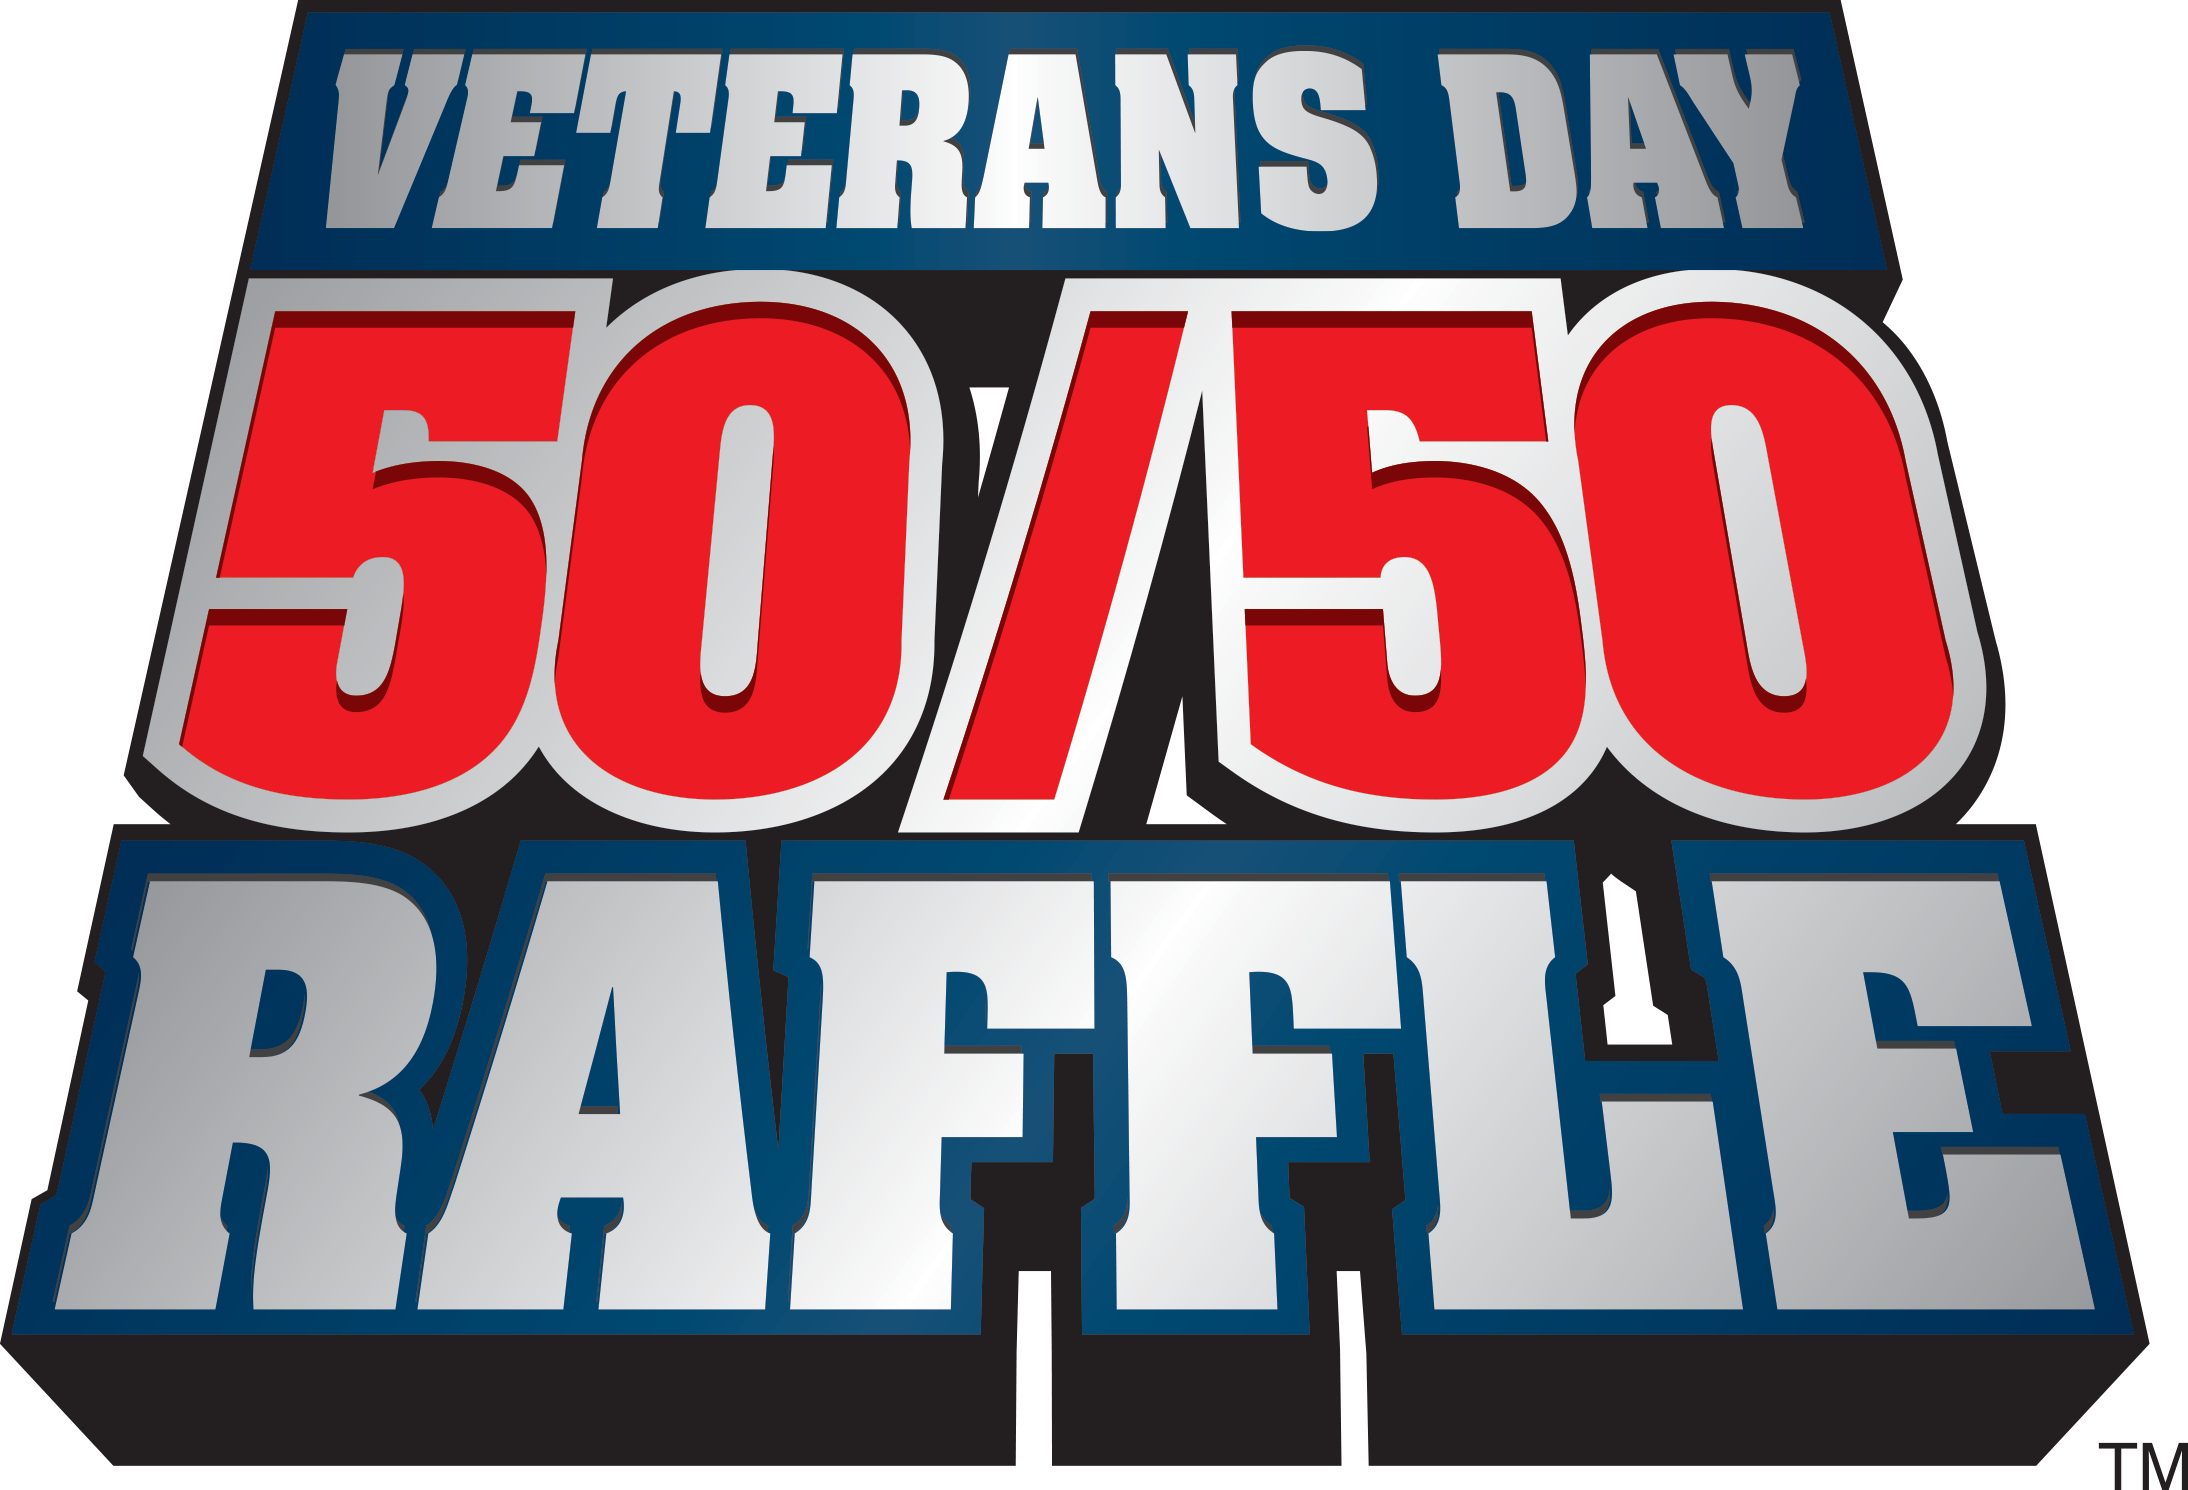 50 50 raffle clipart picture freeuse library Winning Veterans Day 50/50 Raffle Bonus Drawing Ticket Bought in ... picture freeuse library